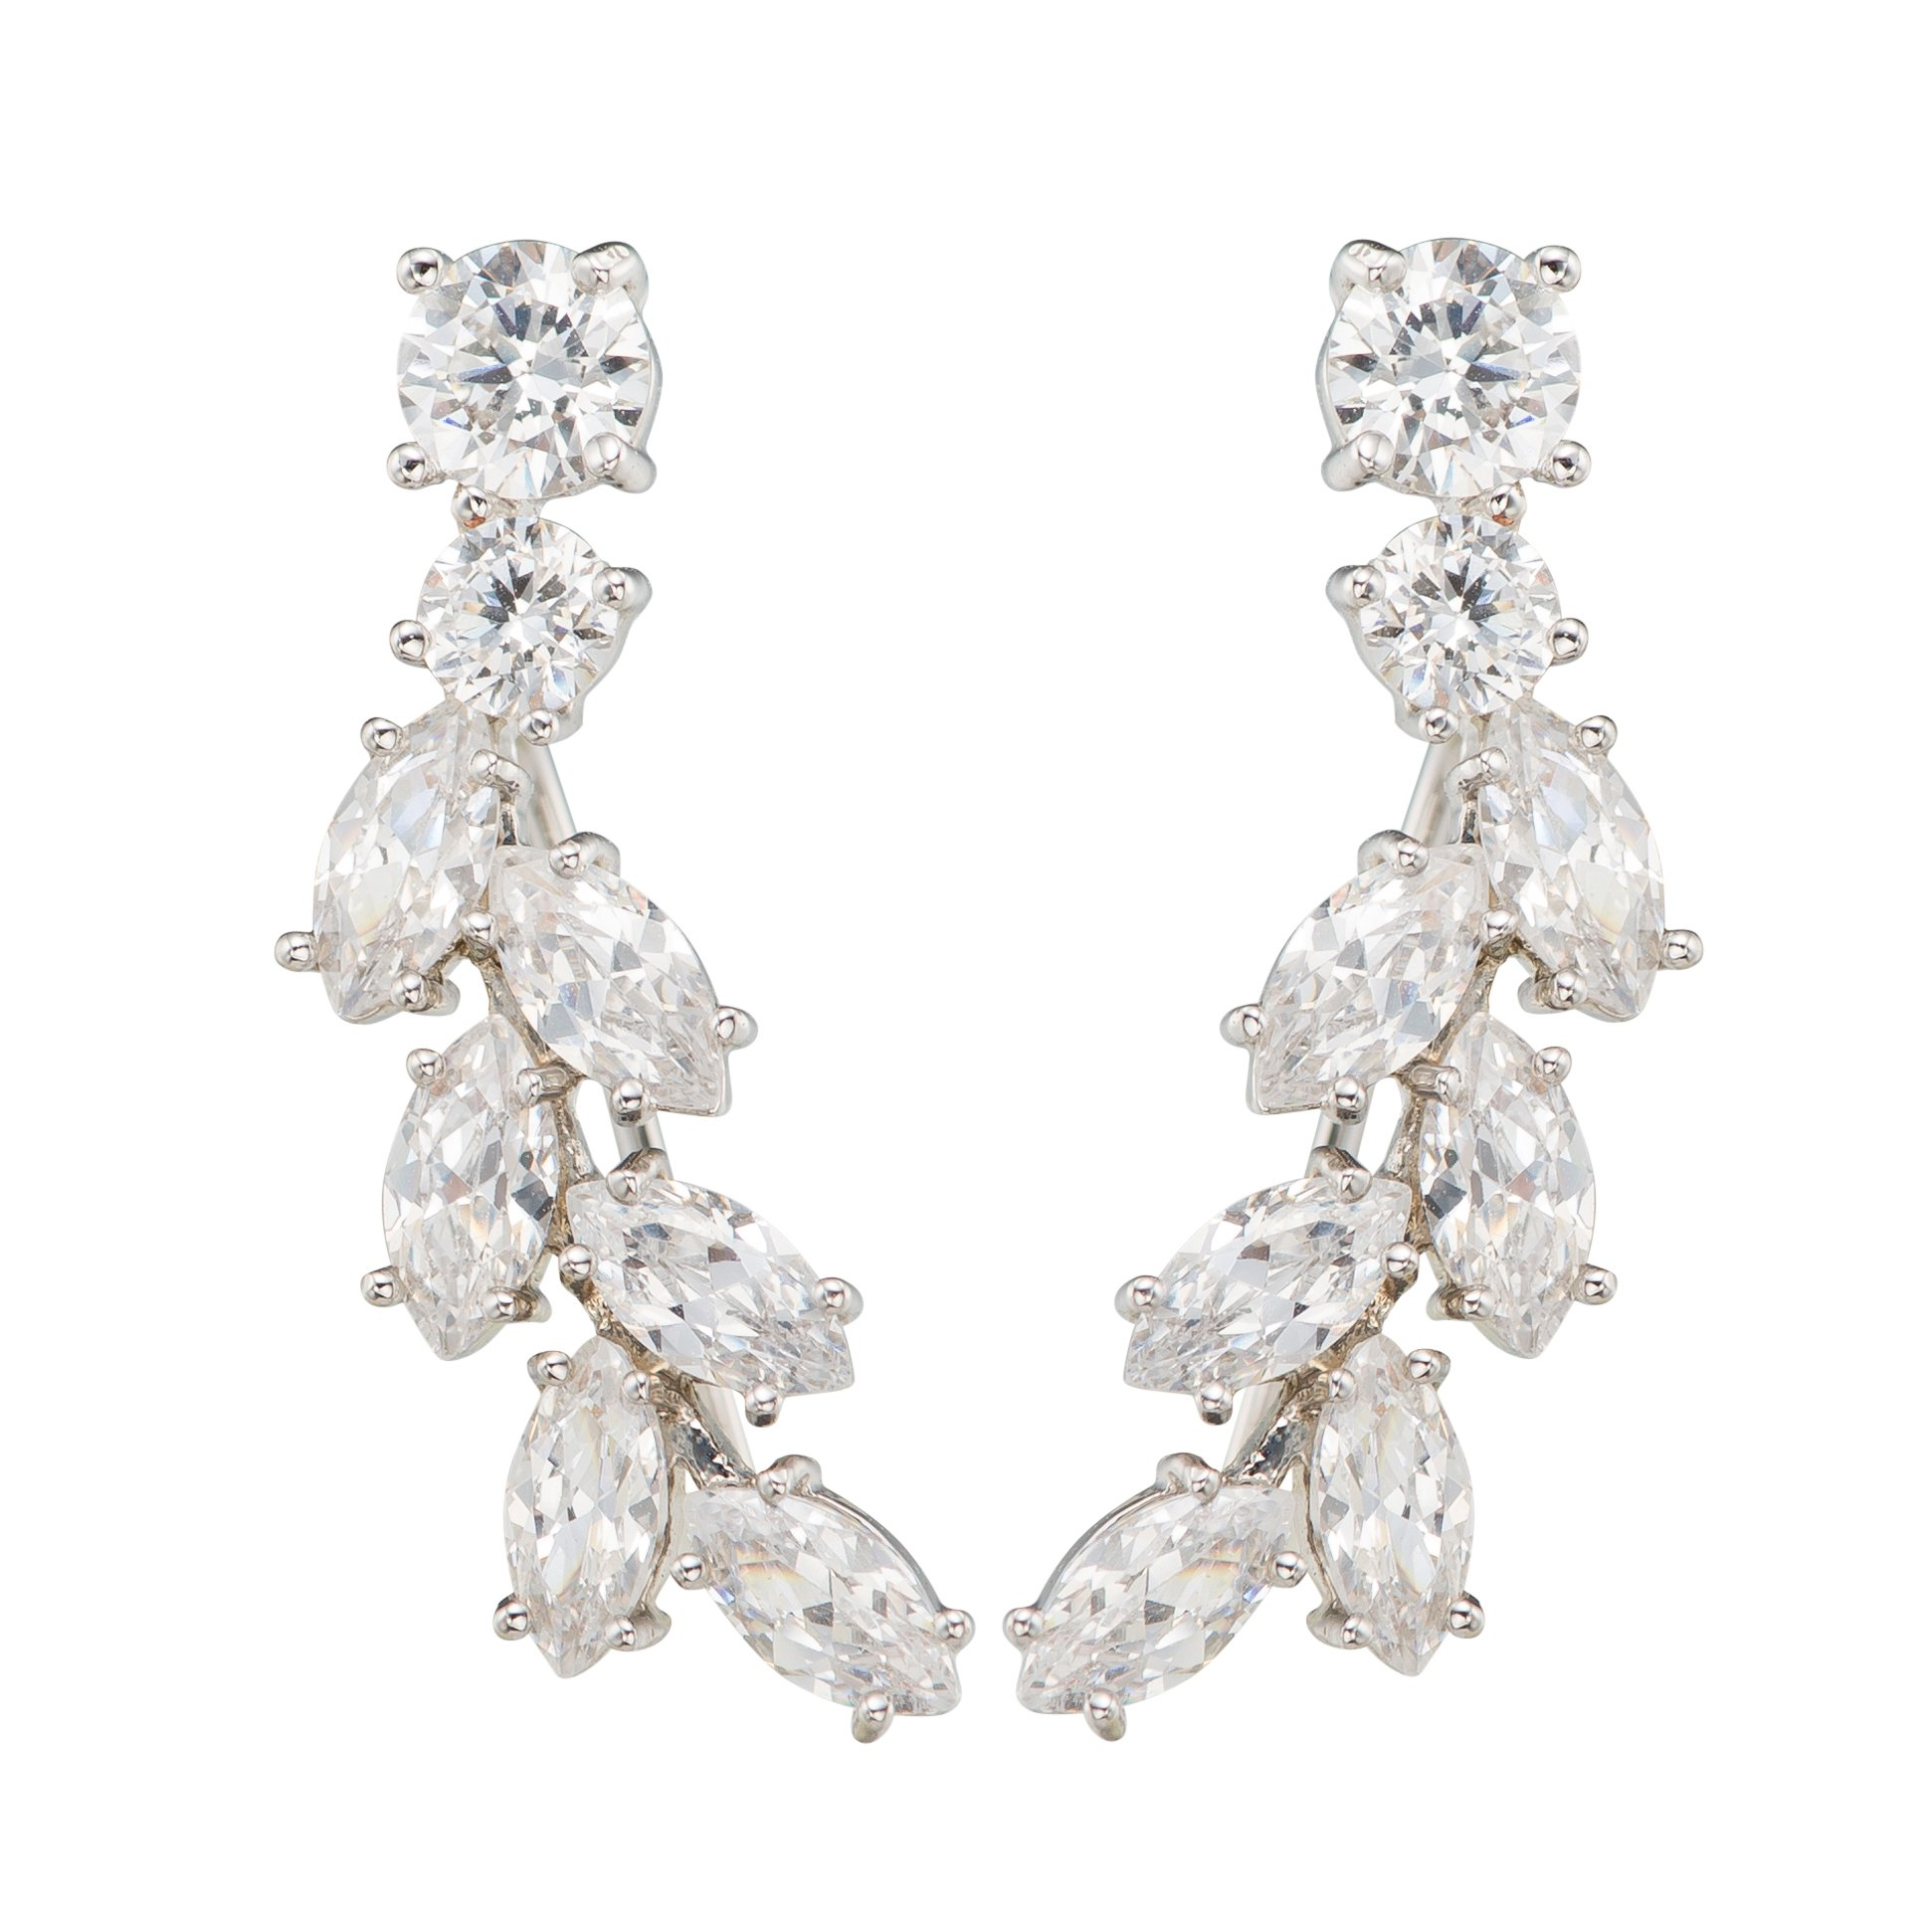 Chicinside Sweep up CZ Crystal Ear Wrap Pin Ear Cuffs Climbers Hook Earrings (silver-plated-base)